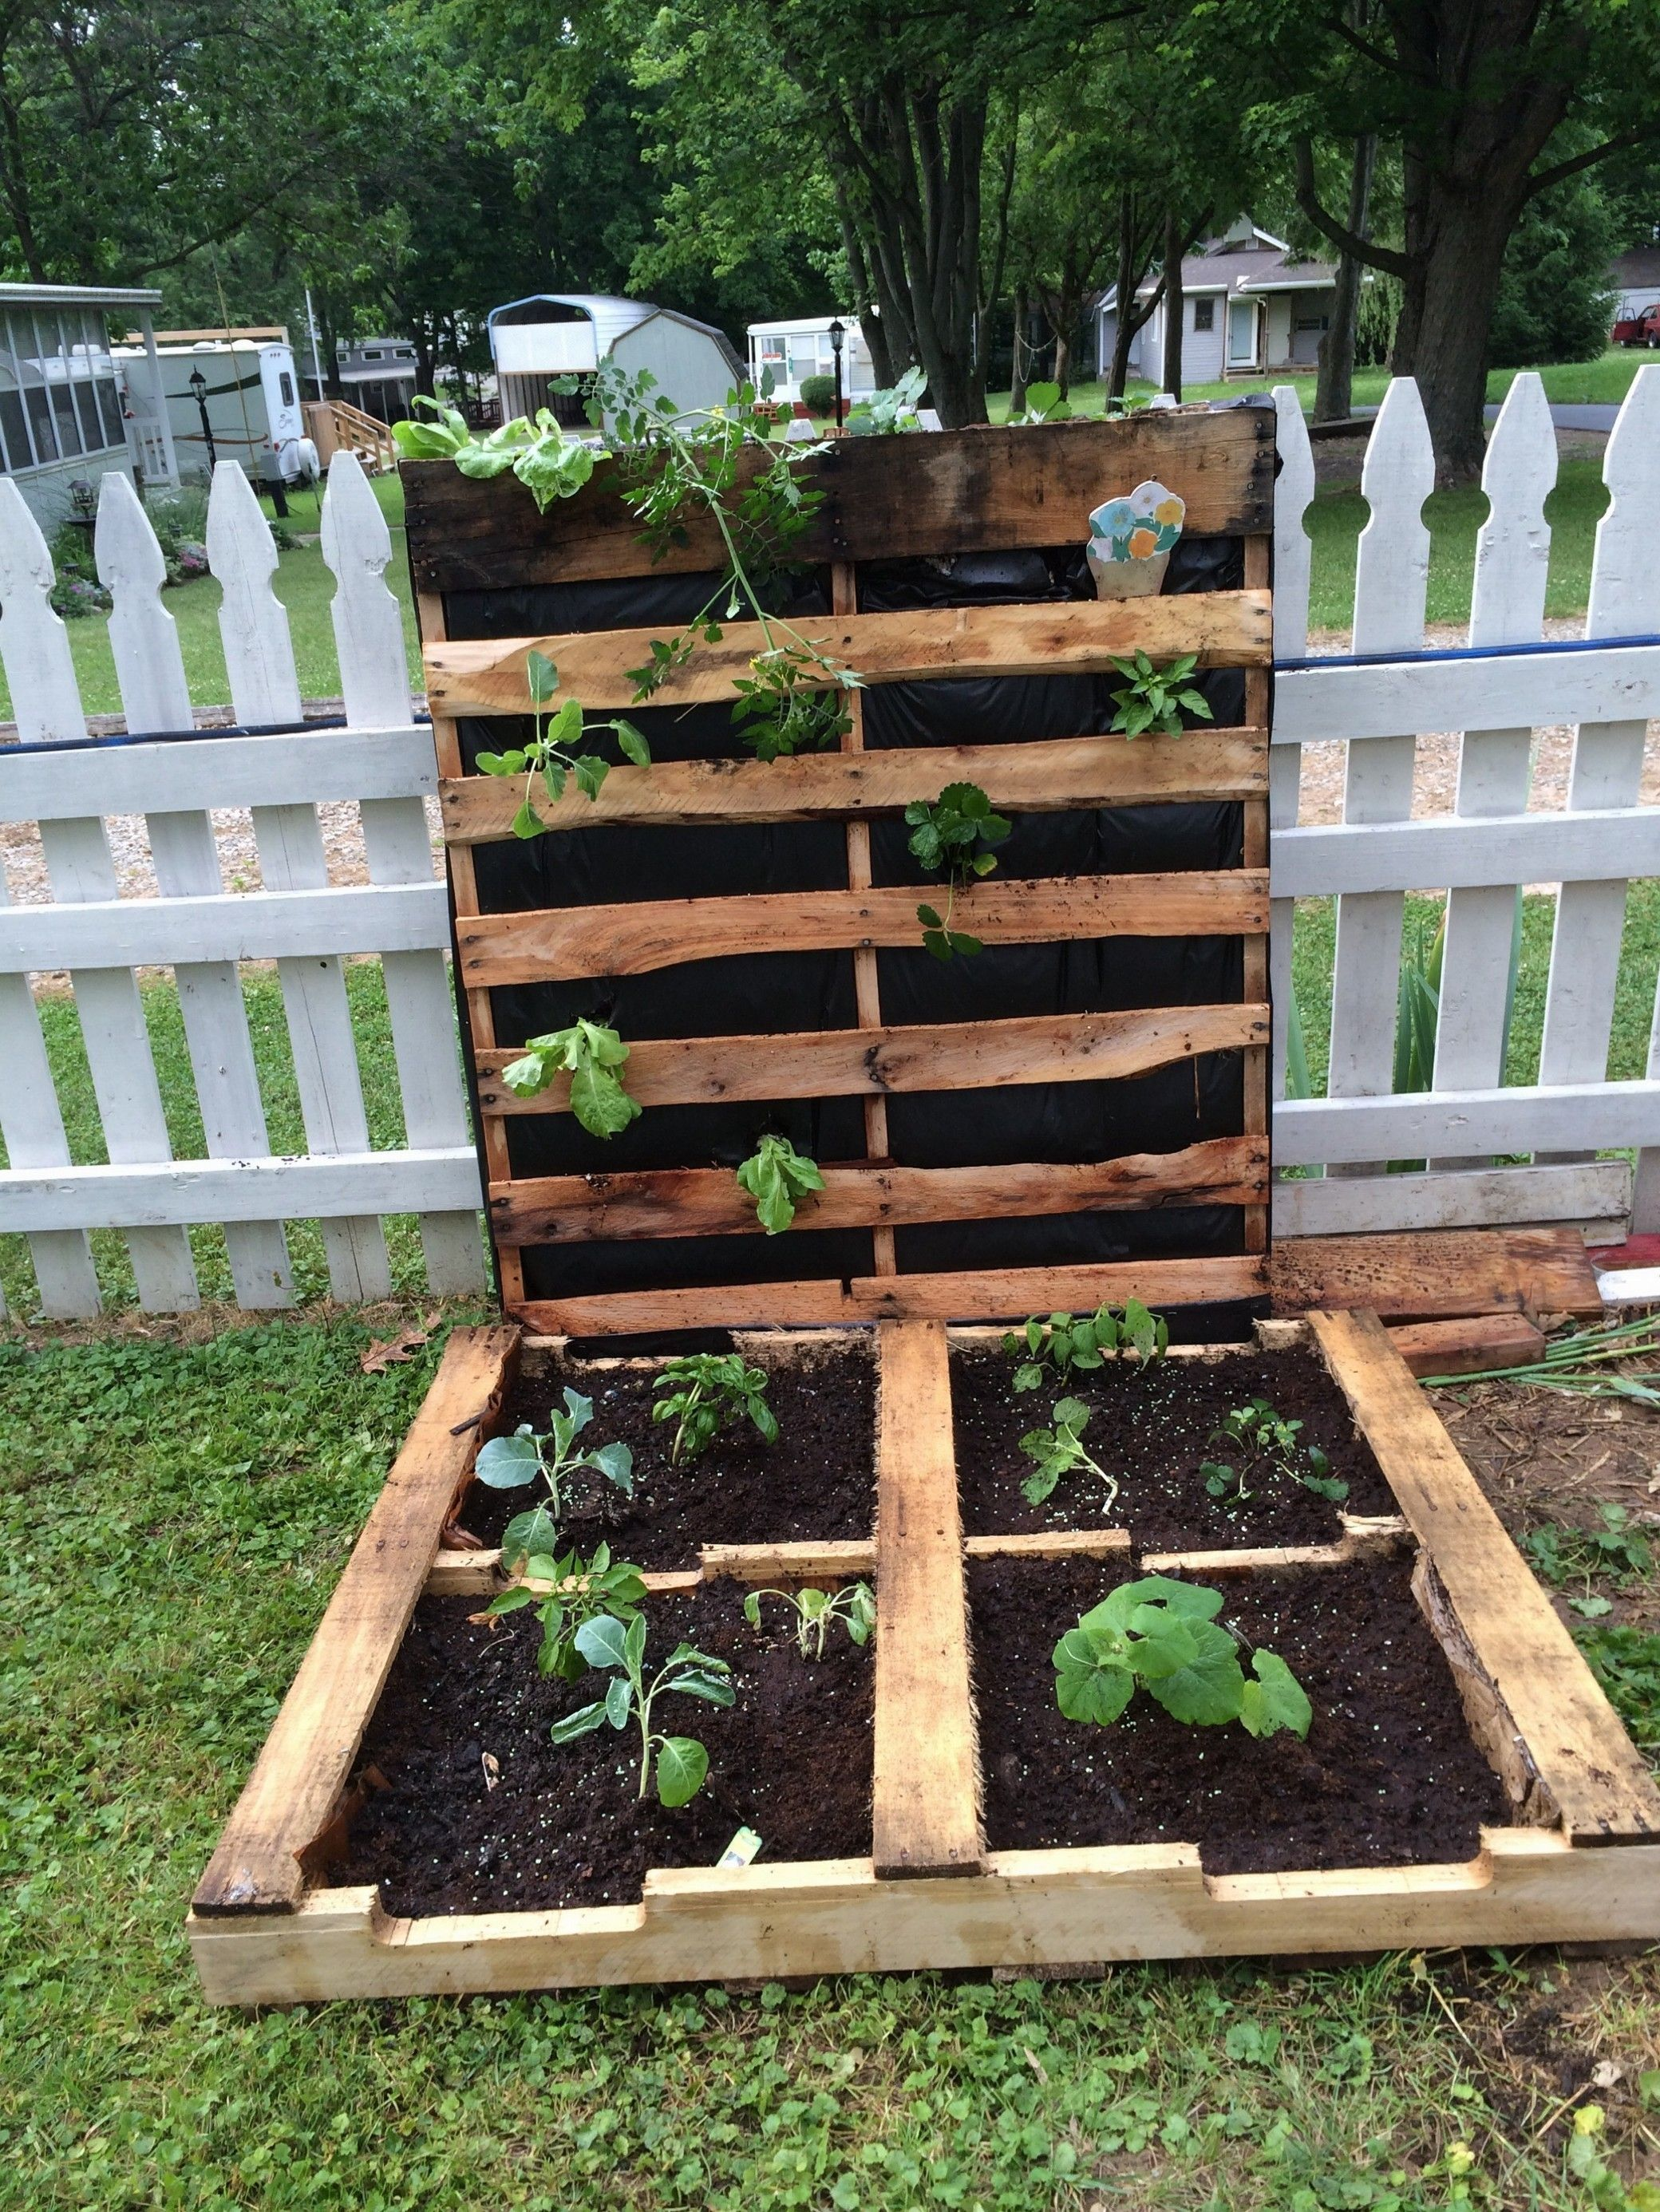 Charmant Pallet Gardening Is A Garden Ideas By Using Pallets Make You Enable To